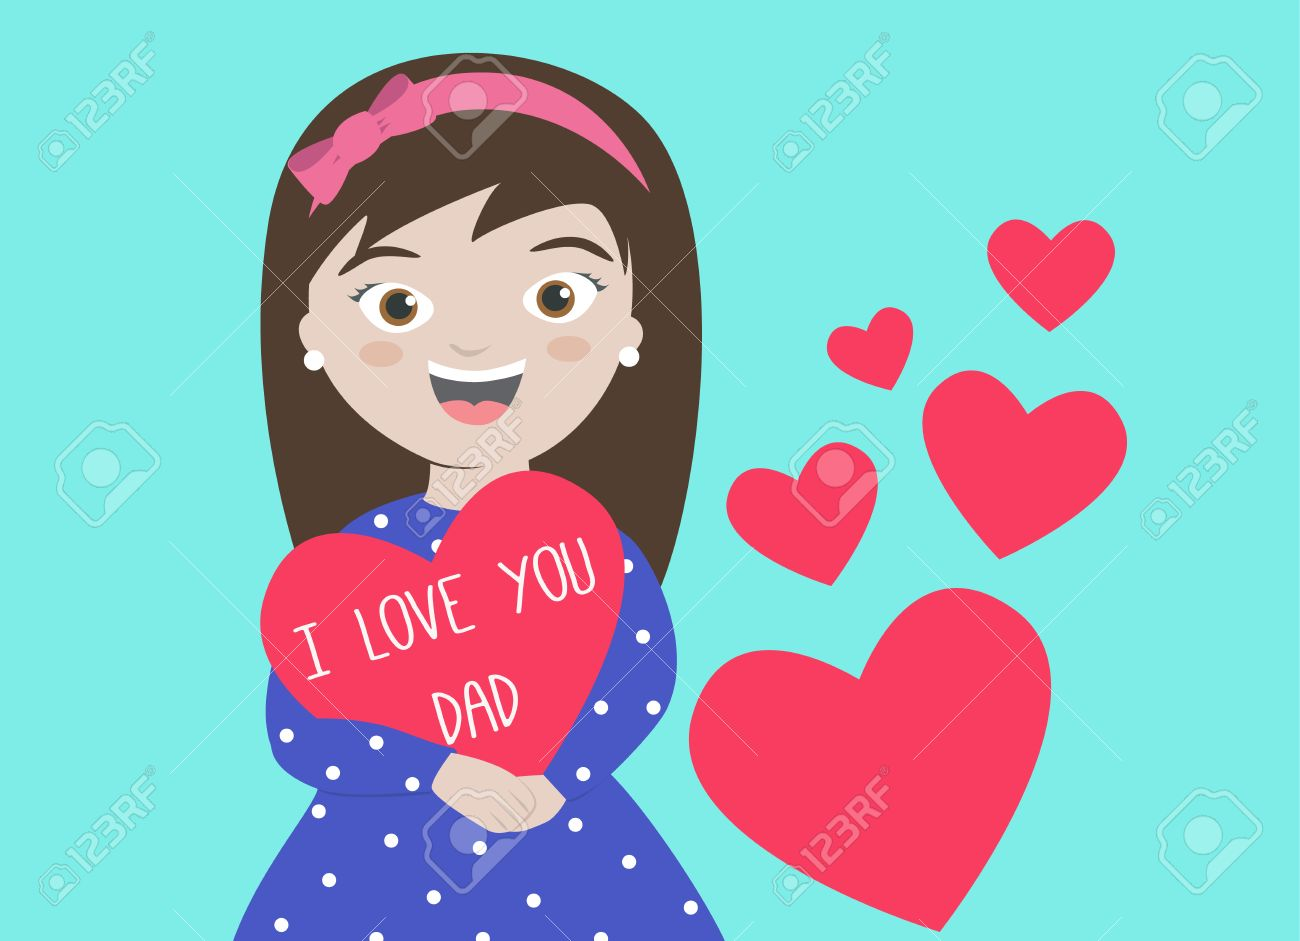 I Love You Daughter Clipart.